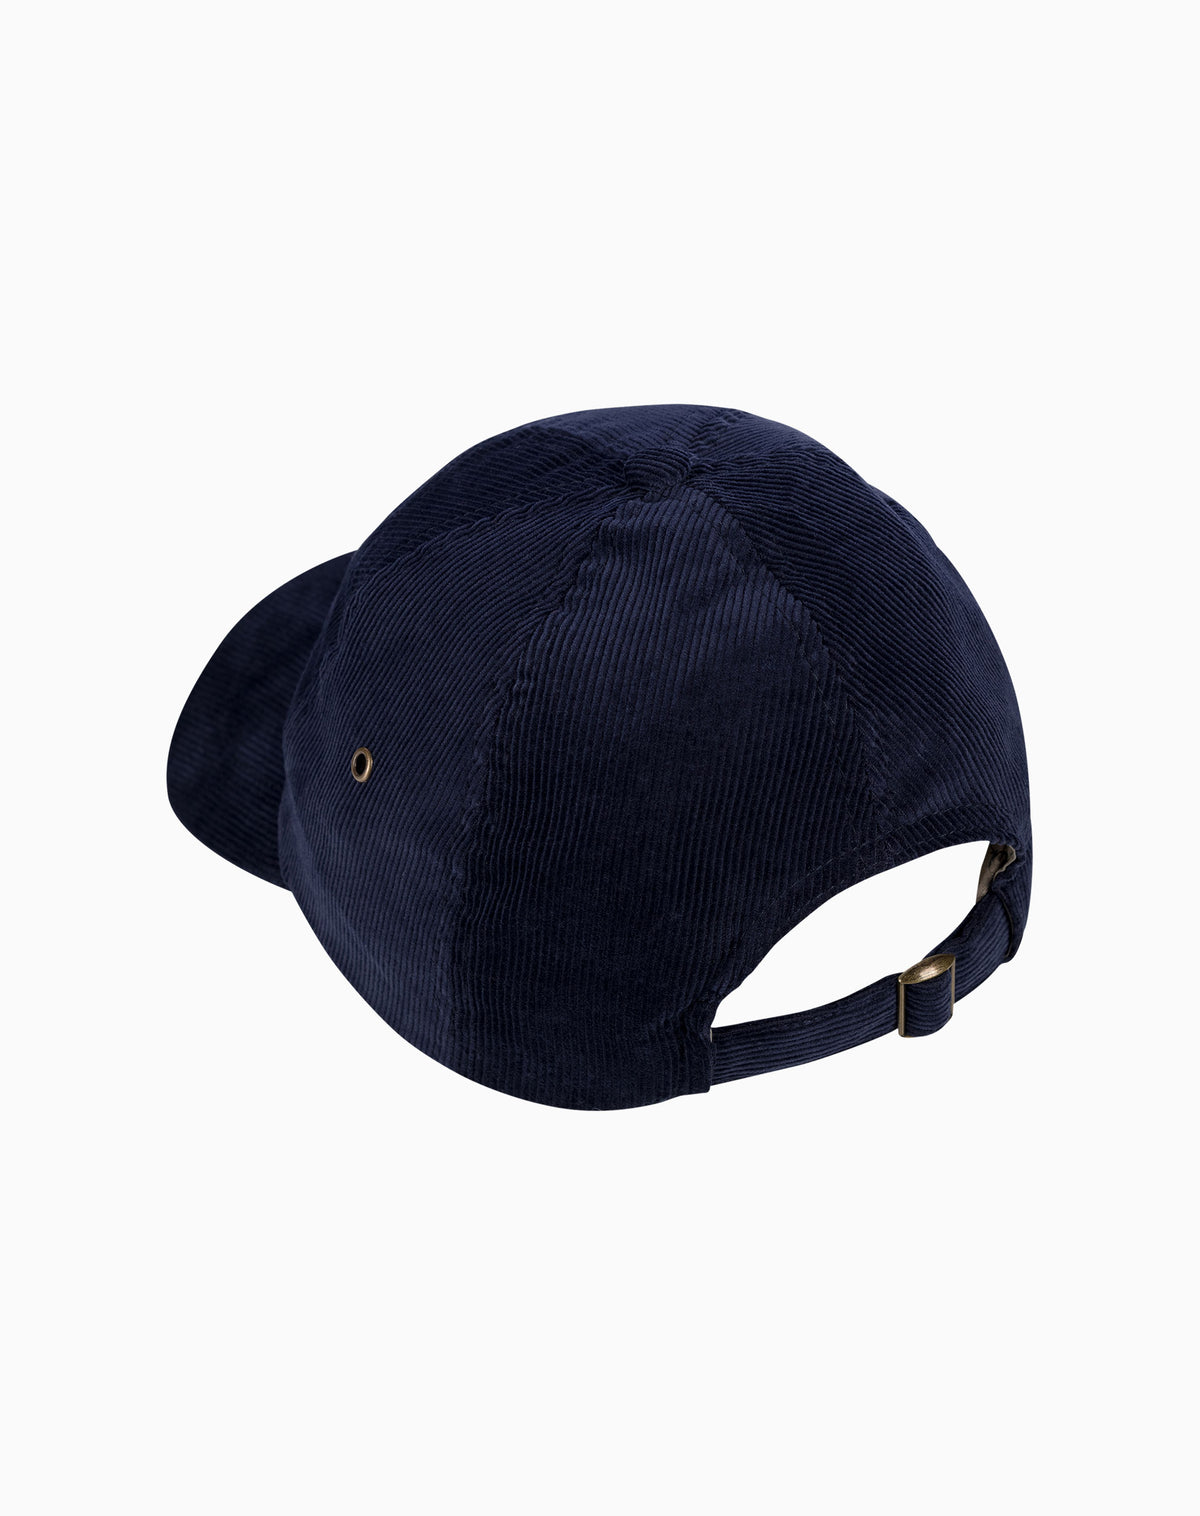 7-Panel with Swordfish in Navy